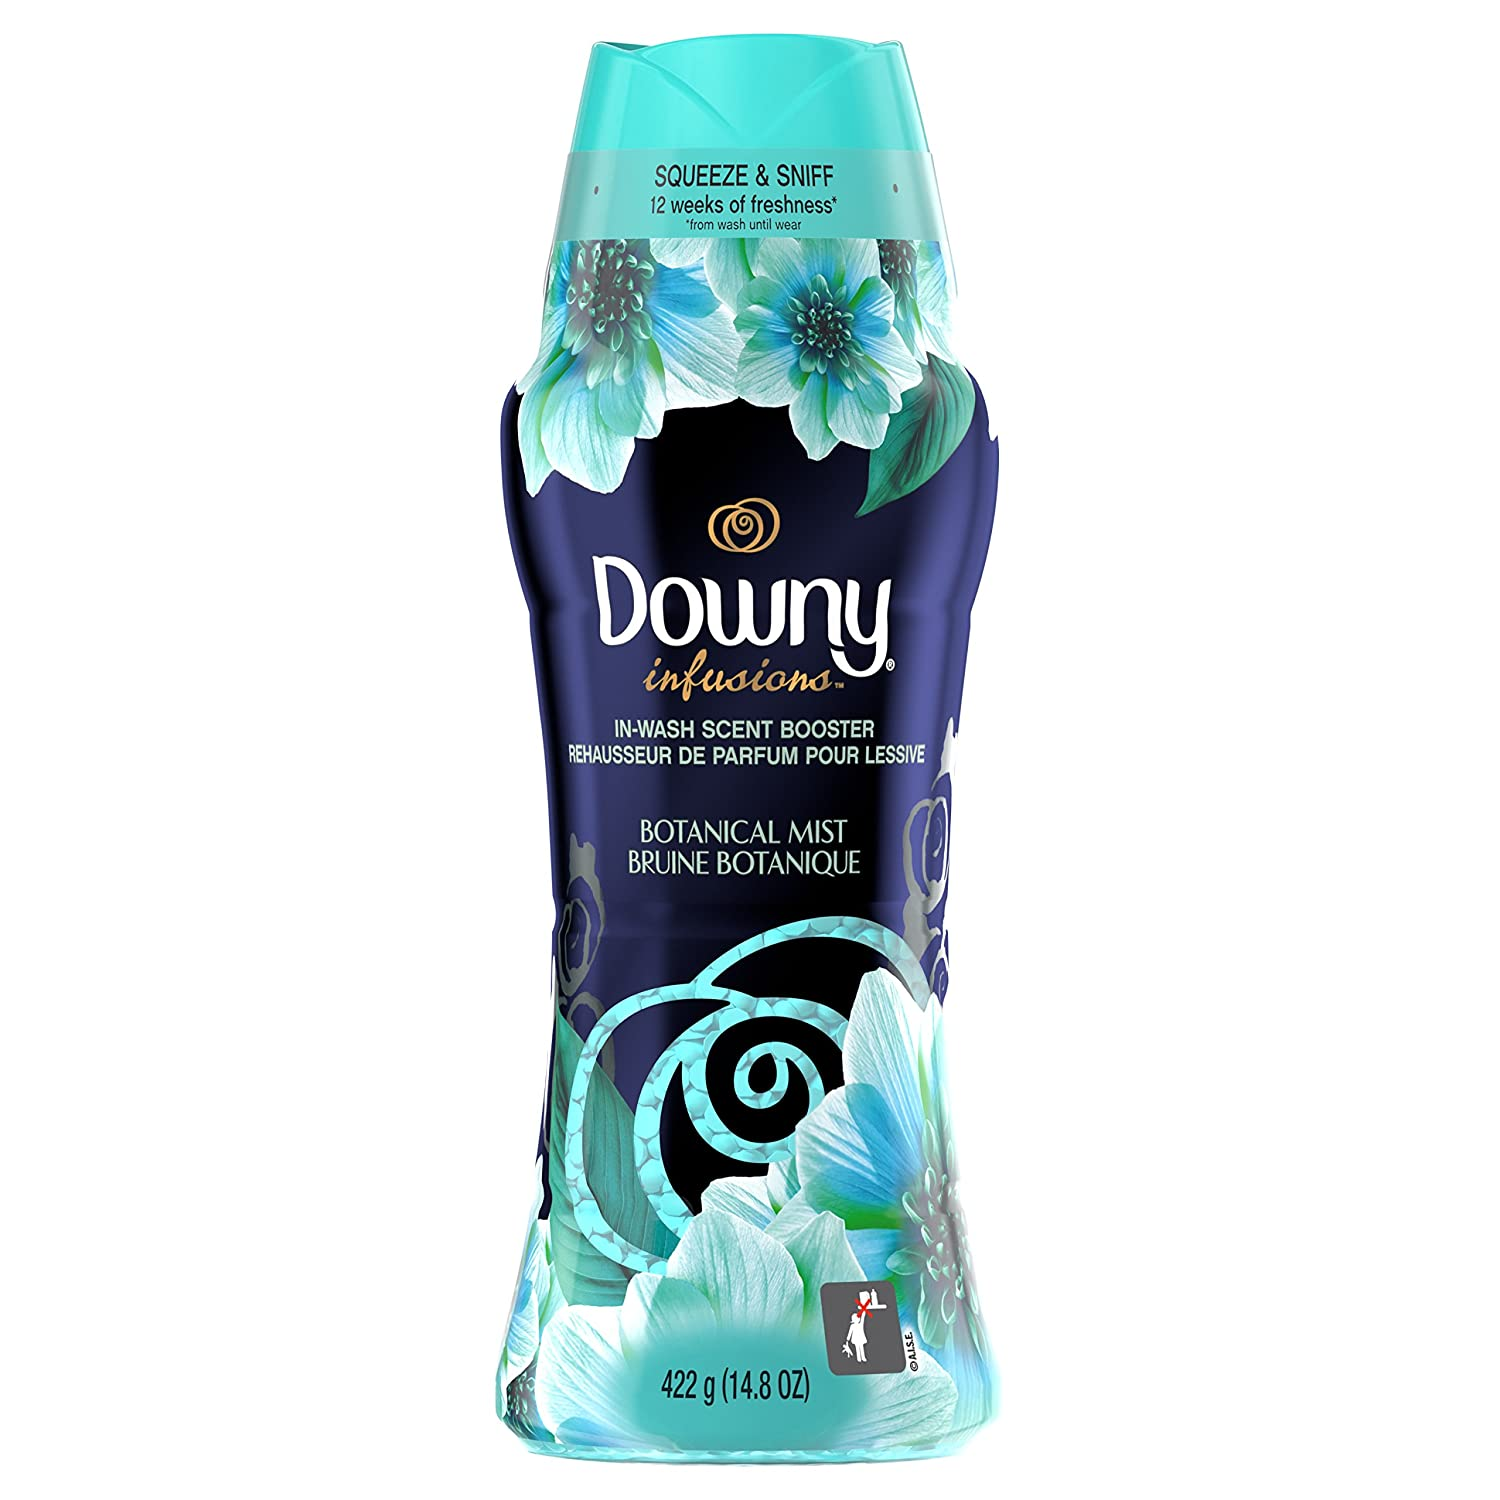 Downy Infusions in-Wash Scent Booster Beads, Botanical Mist, 14.8 Ounce